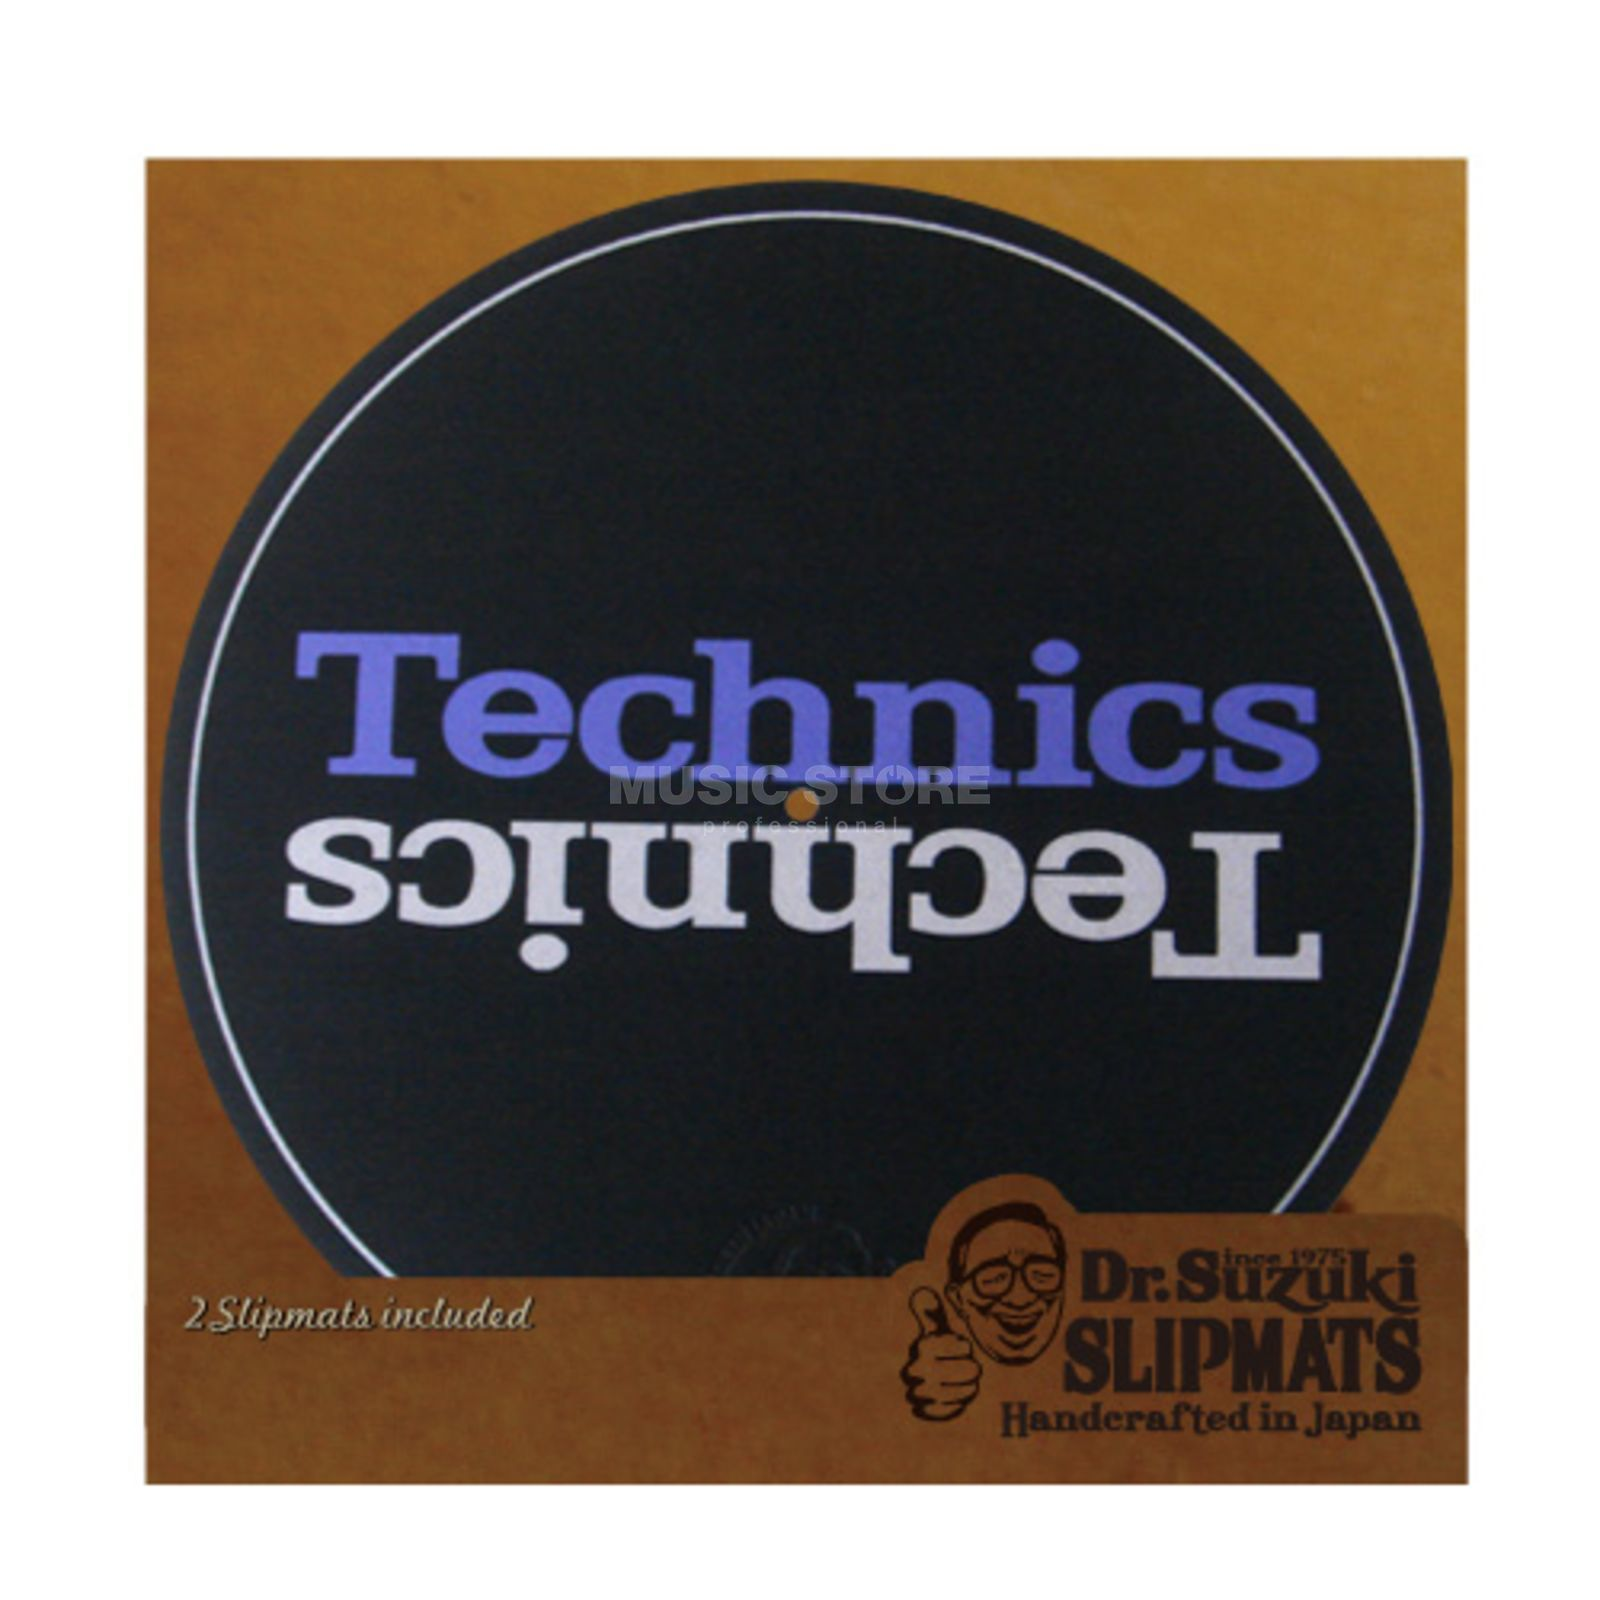 Tablecloth Dr.Suzuki Mix Edition Slipmats Technics (paar) Produktbild